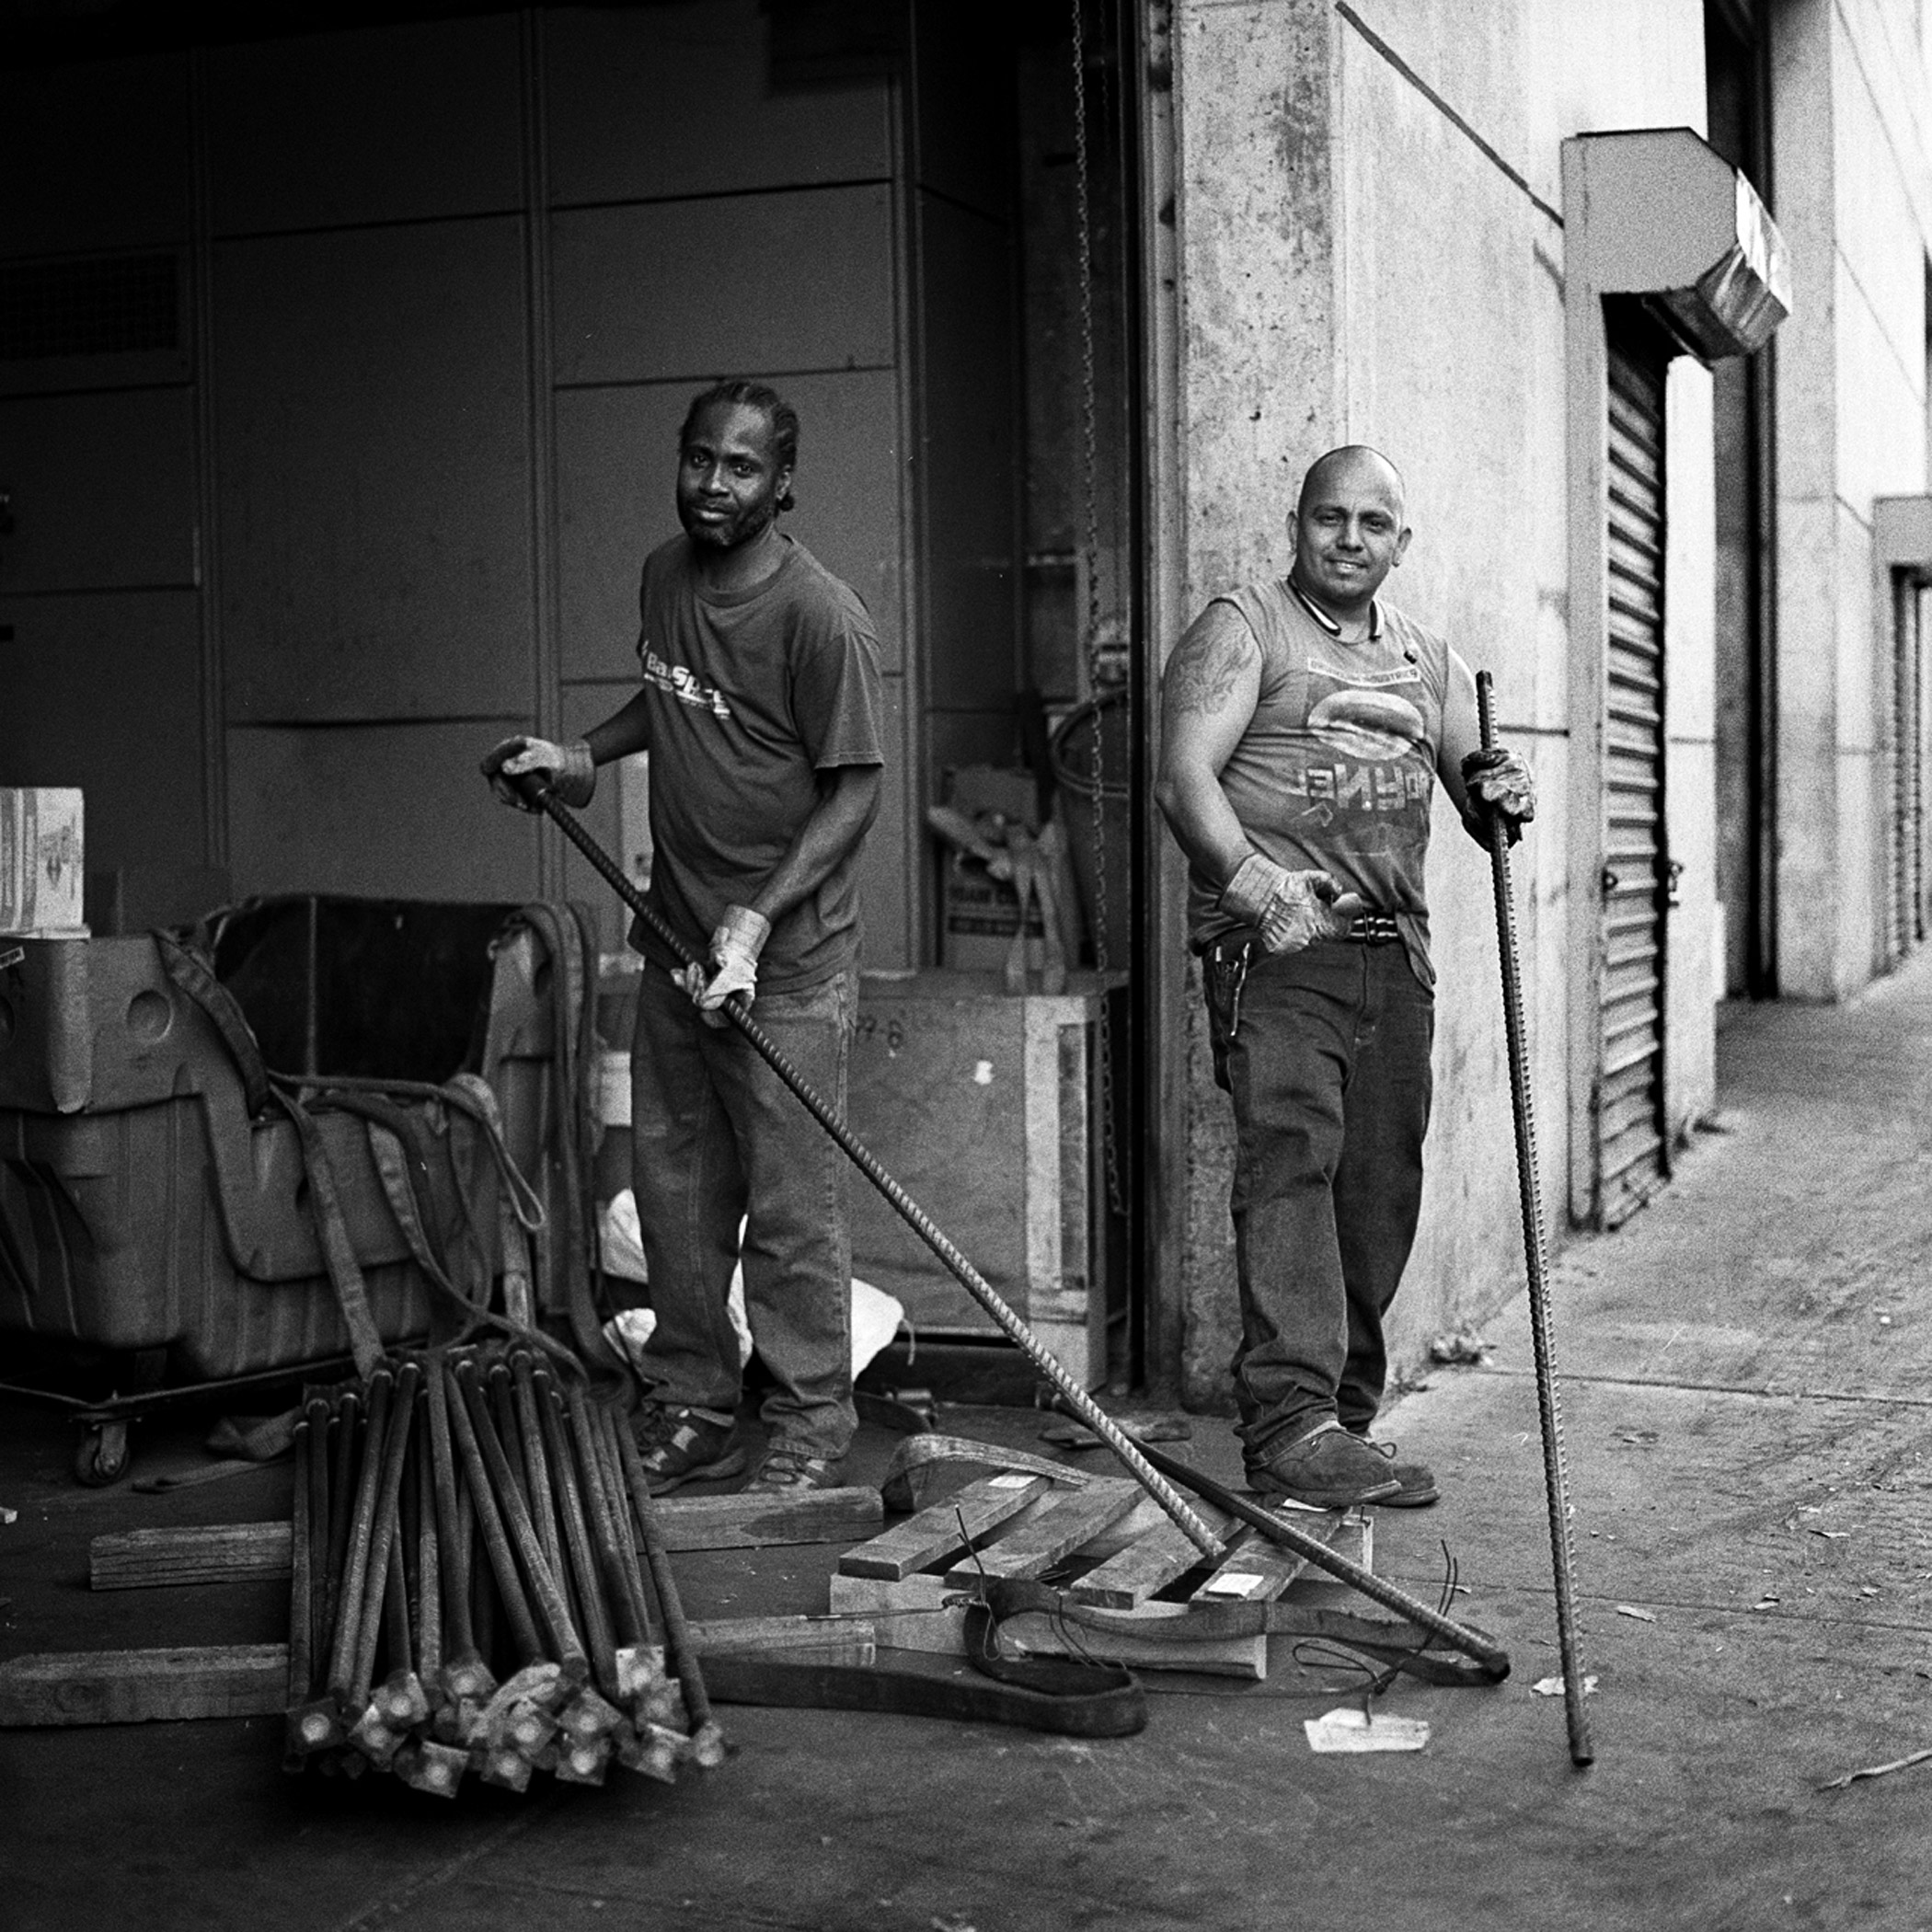 Reinforcing Supply workers disassembling a skid out in front of their Morgan Ave. warehouse.                                Williamsburg, Brooklyn, N.Y. (Sept. 2015)